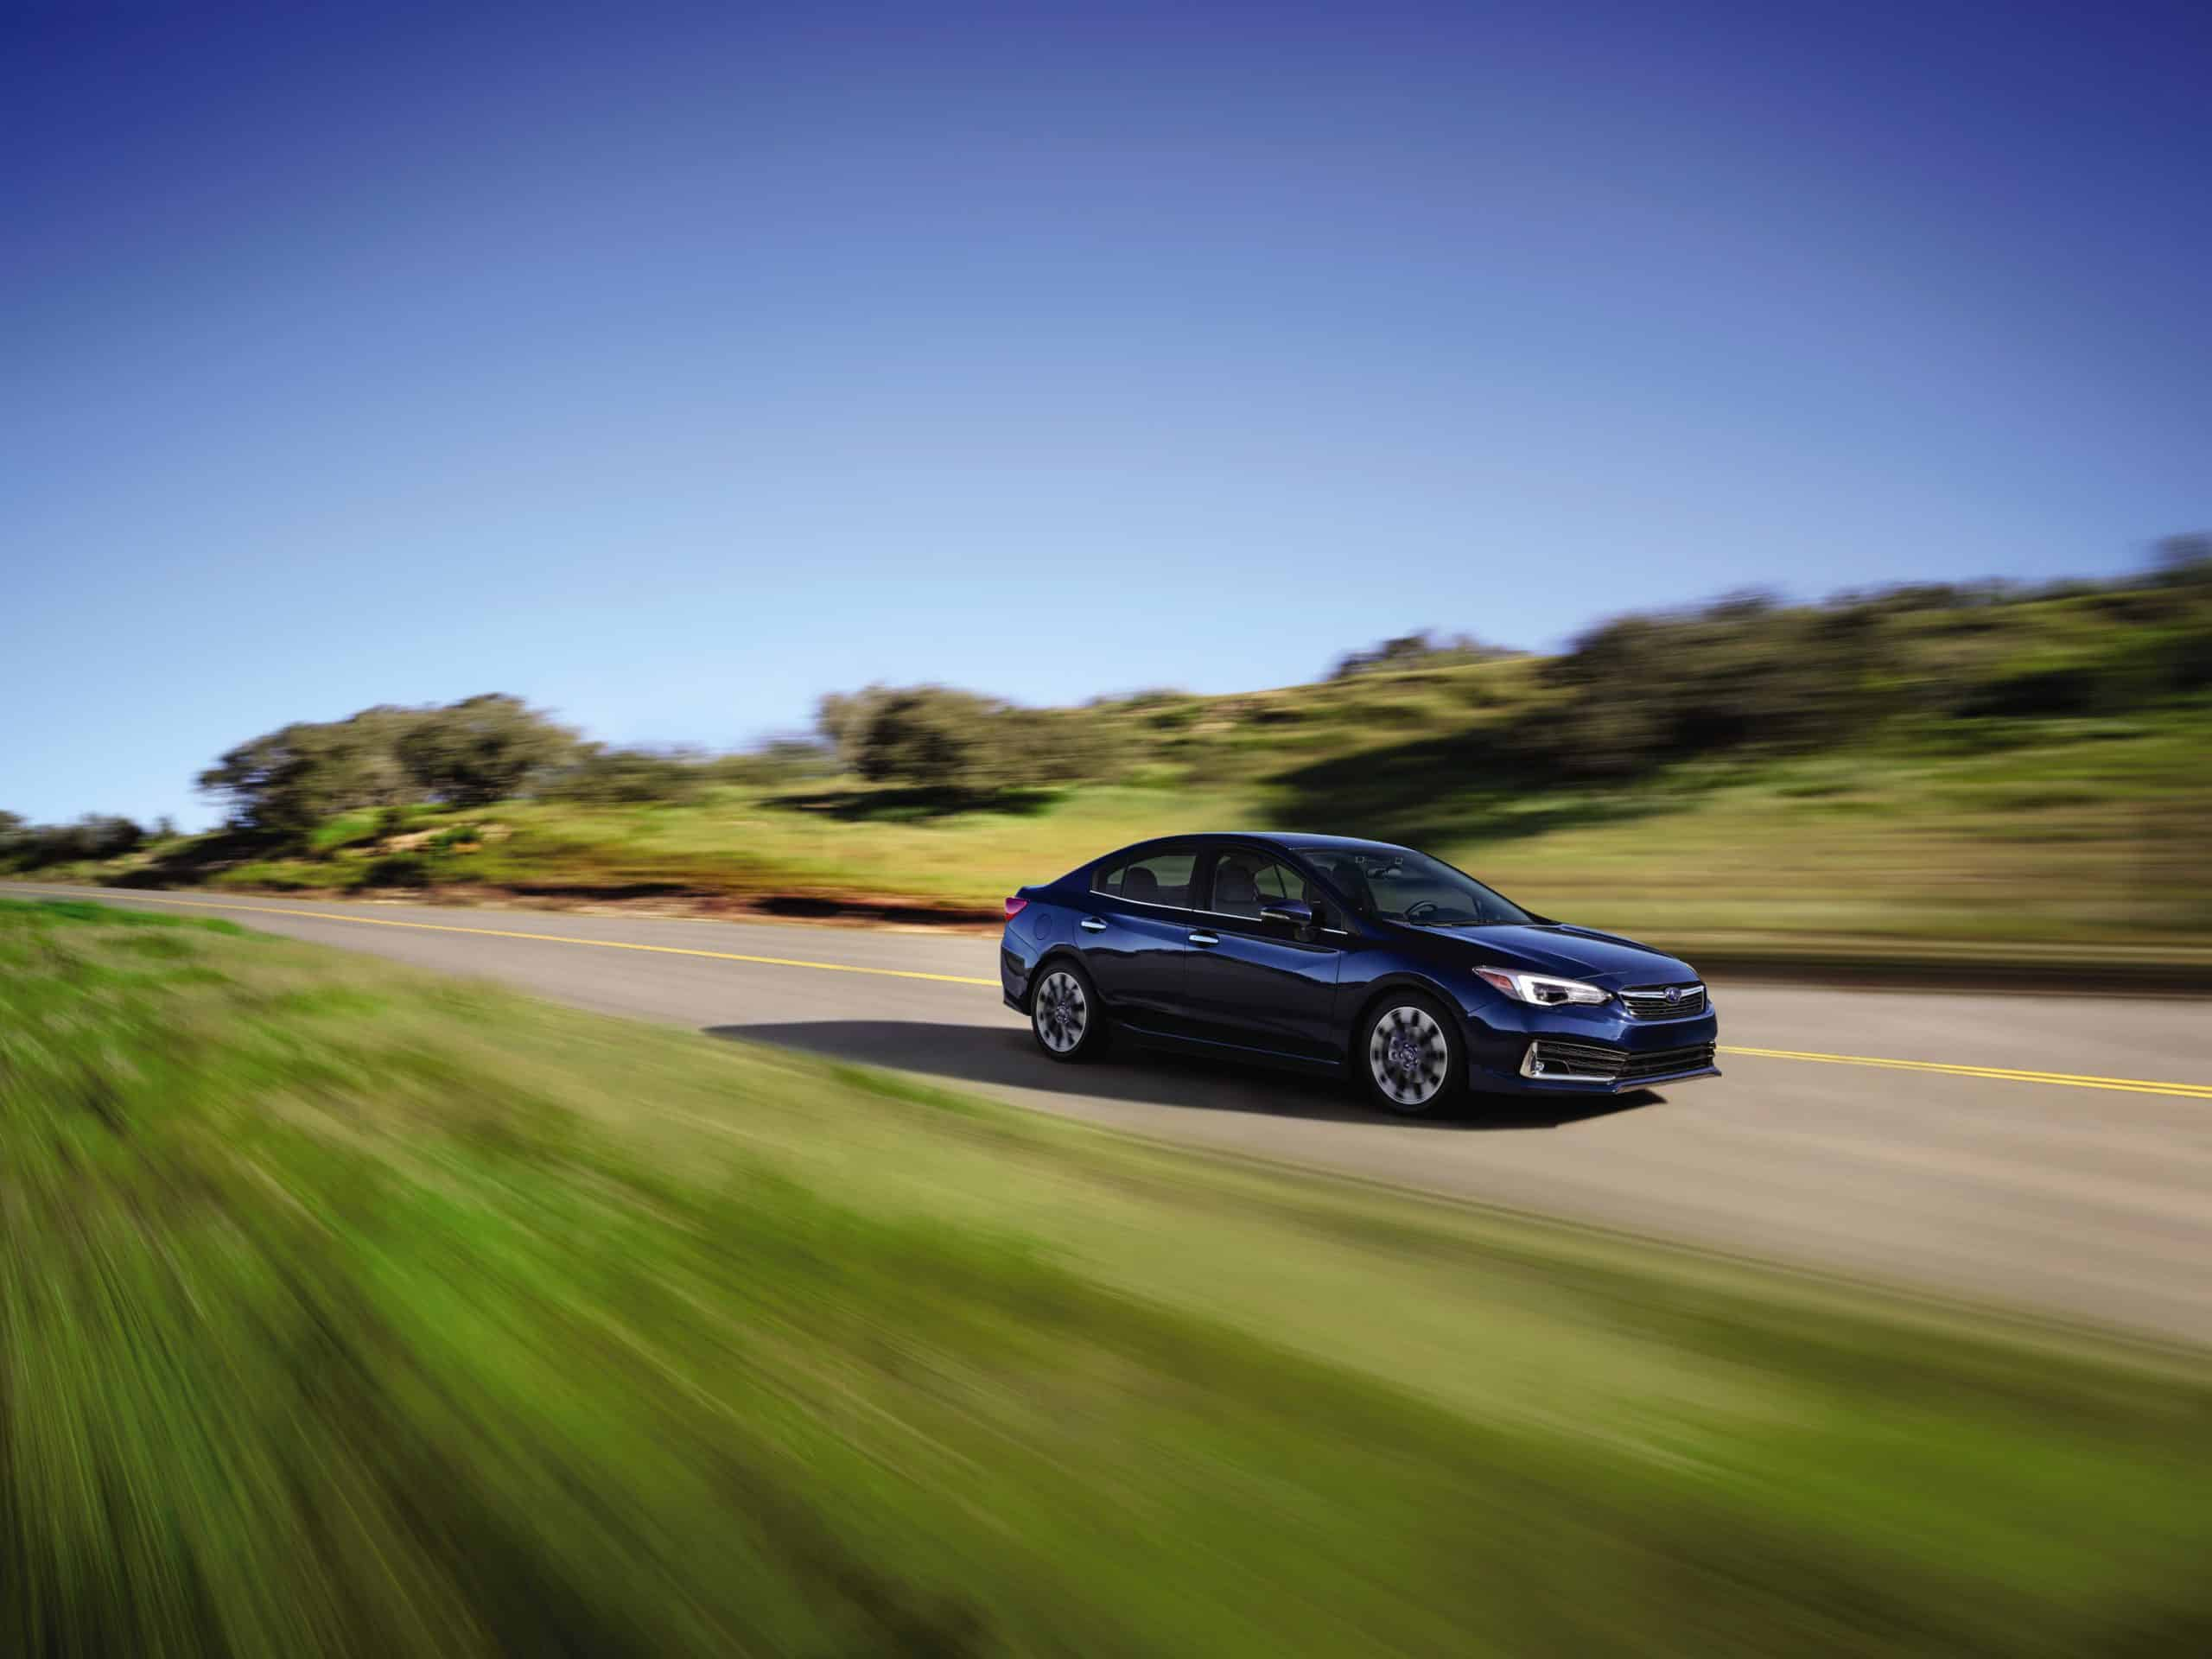 blue subaru sedan on roadway with speed blurred background